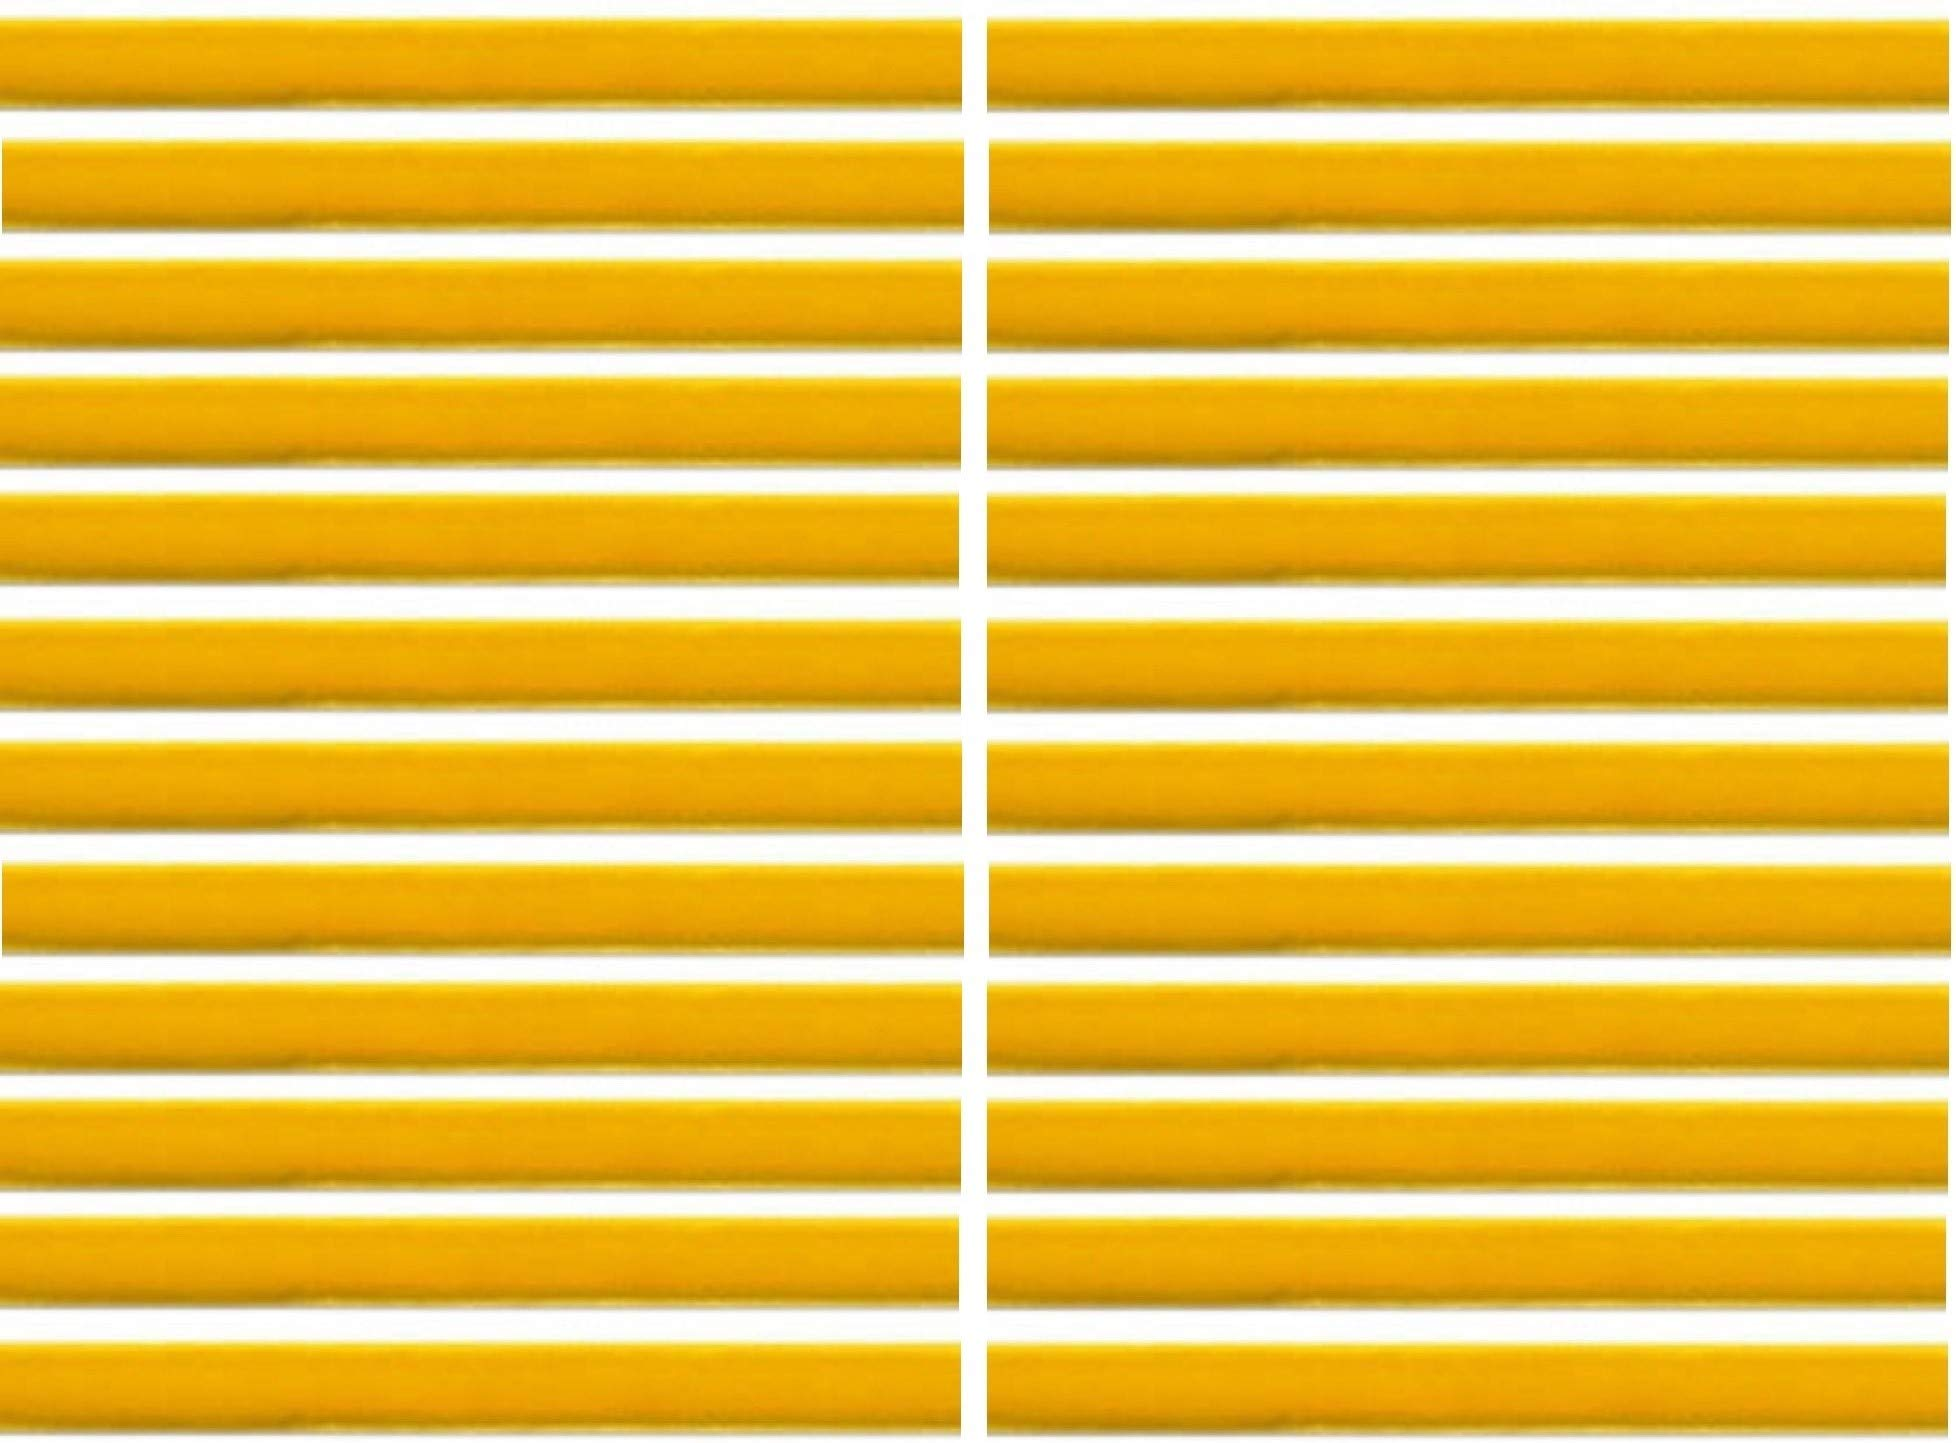 Yellow Gold Replacement Cleaning Strips (24-Pack) VPI Okki Nokki 3M LP Vinyl Record Album by Capitol Collectibles